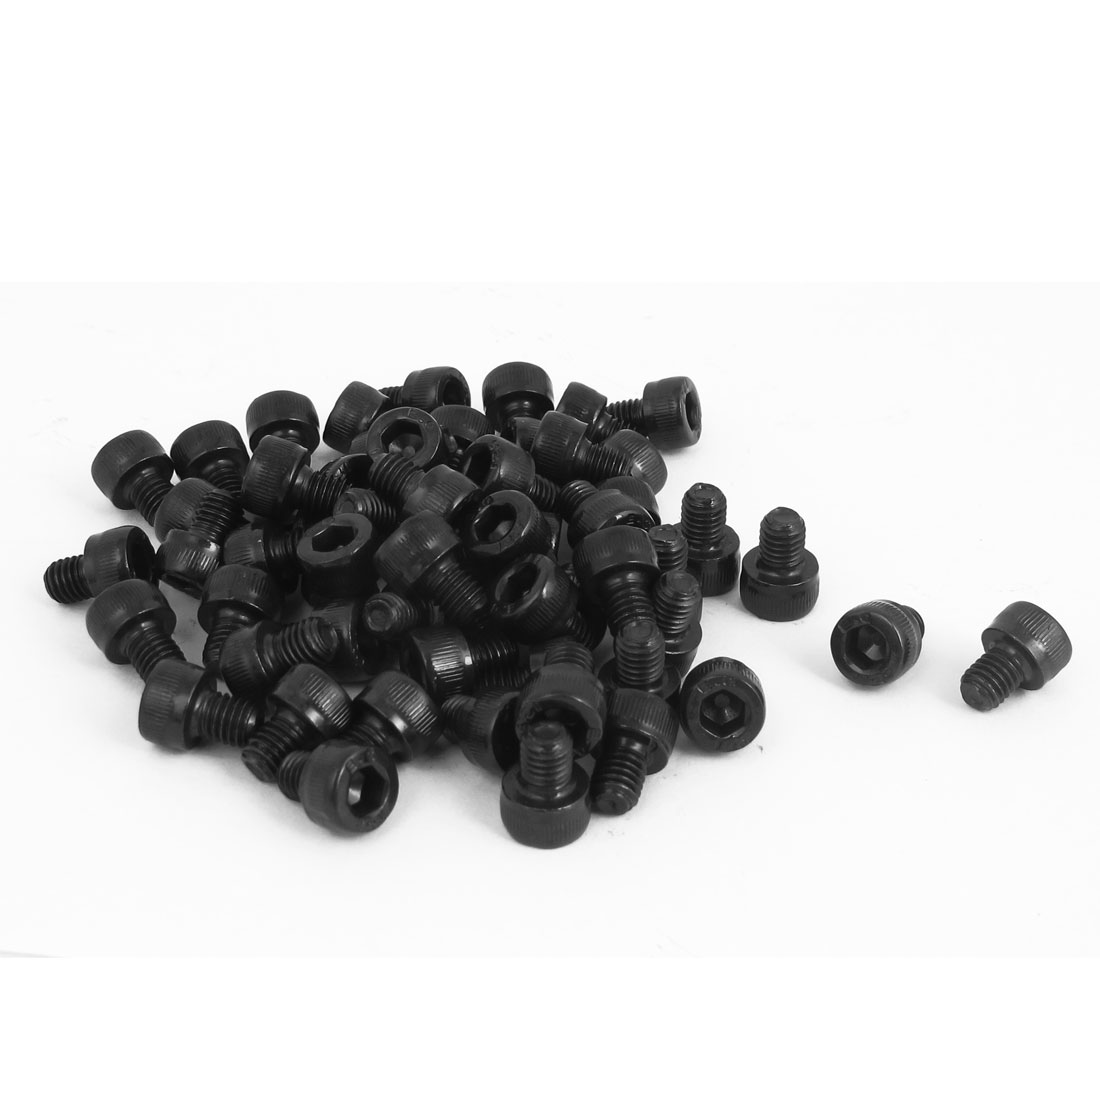 100Pcs M5x6mm Metric 12.9 Alloy Steel Black Hex Socket Head Cap Screws Bolts